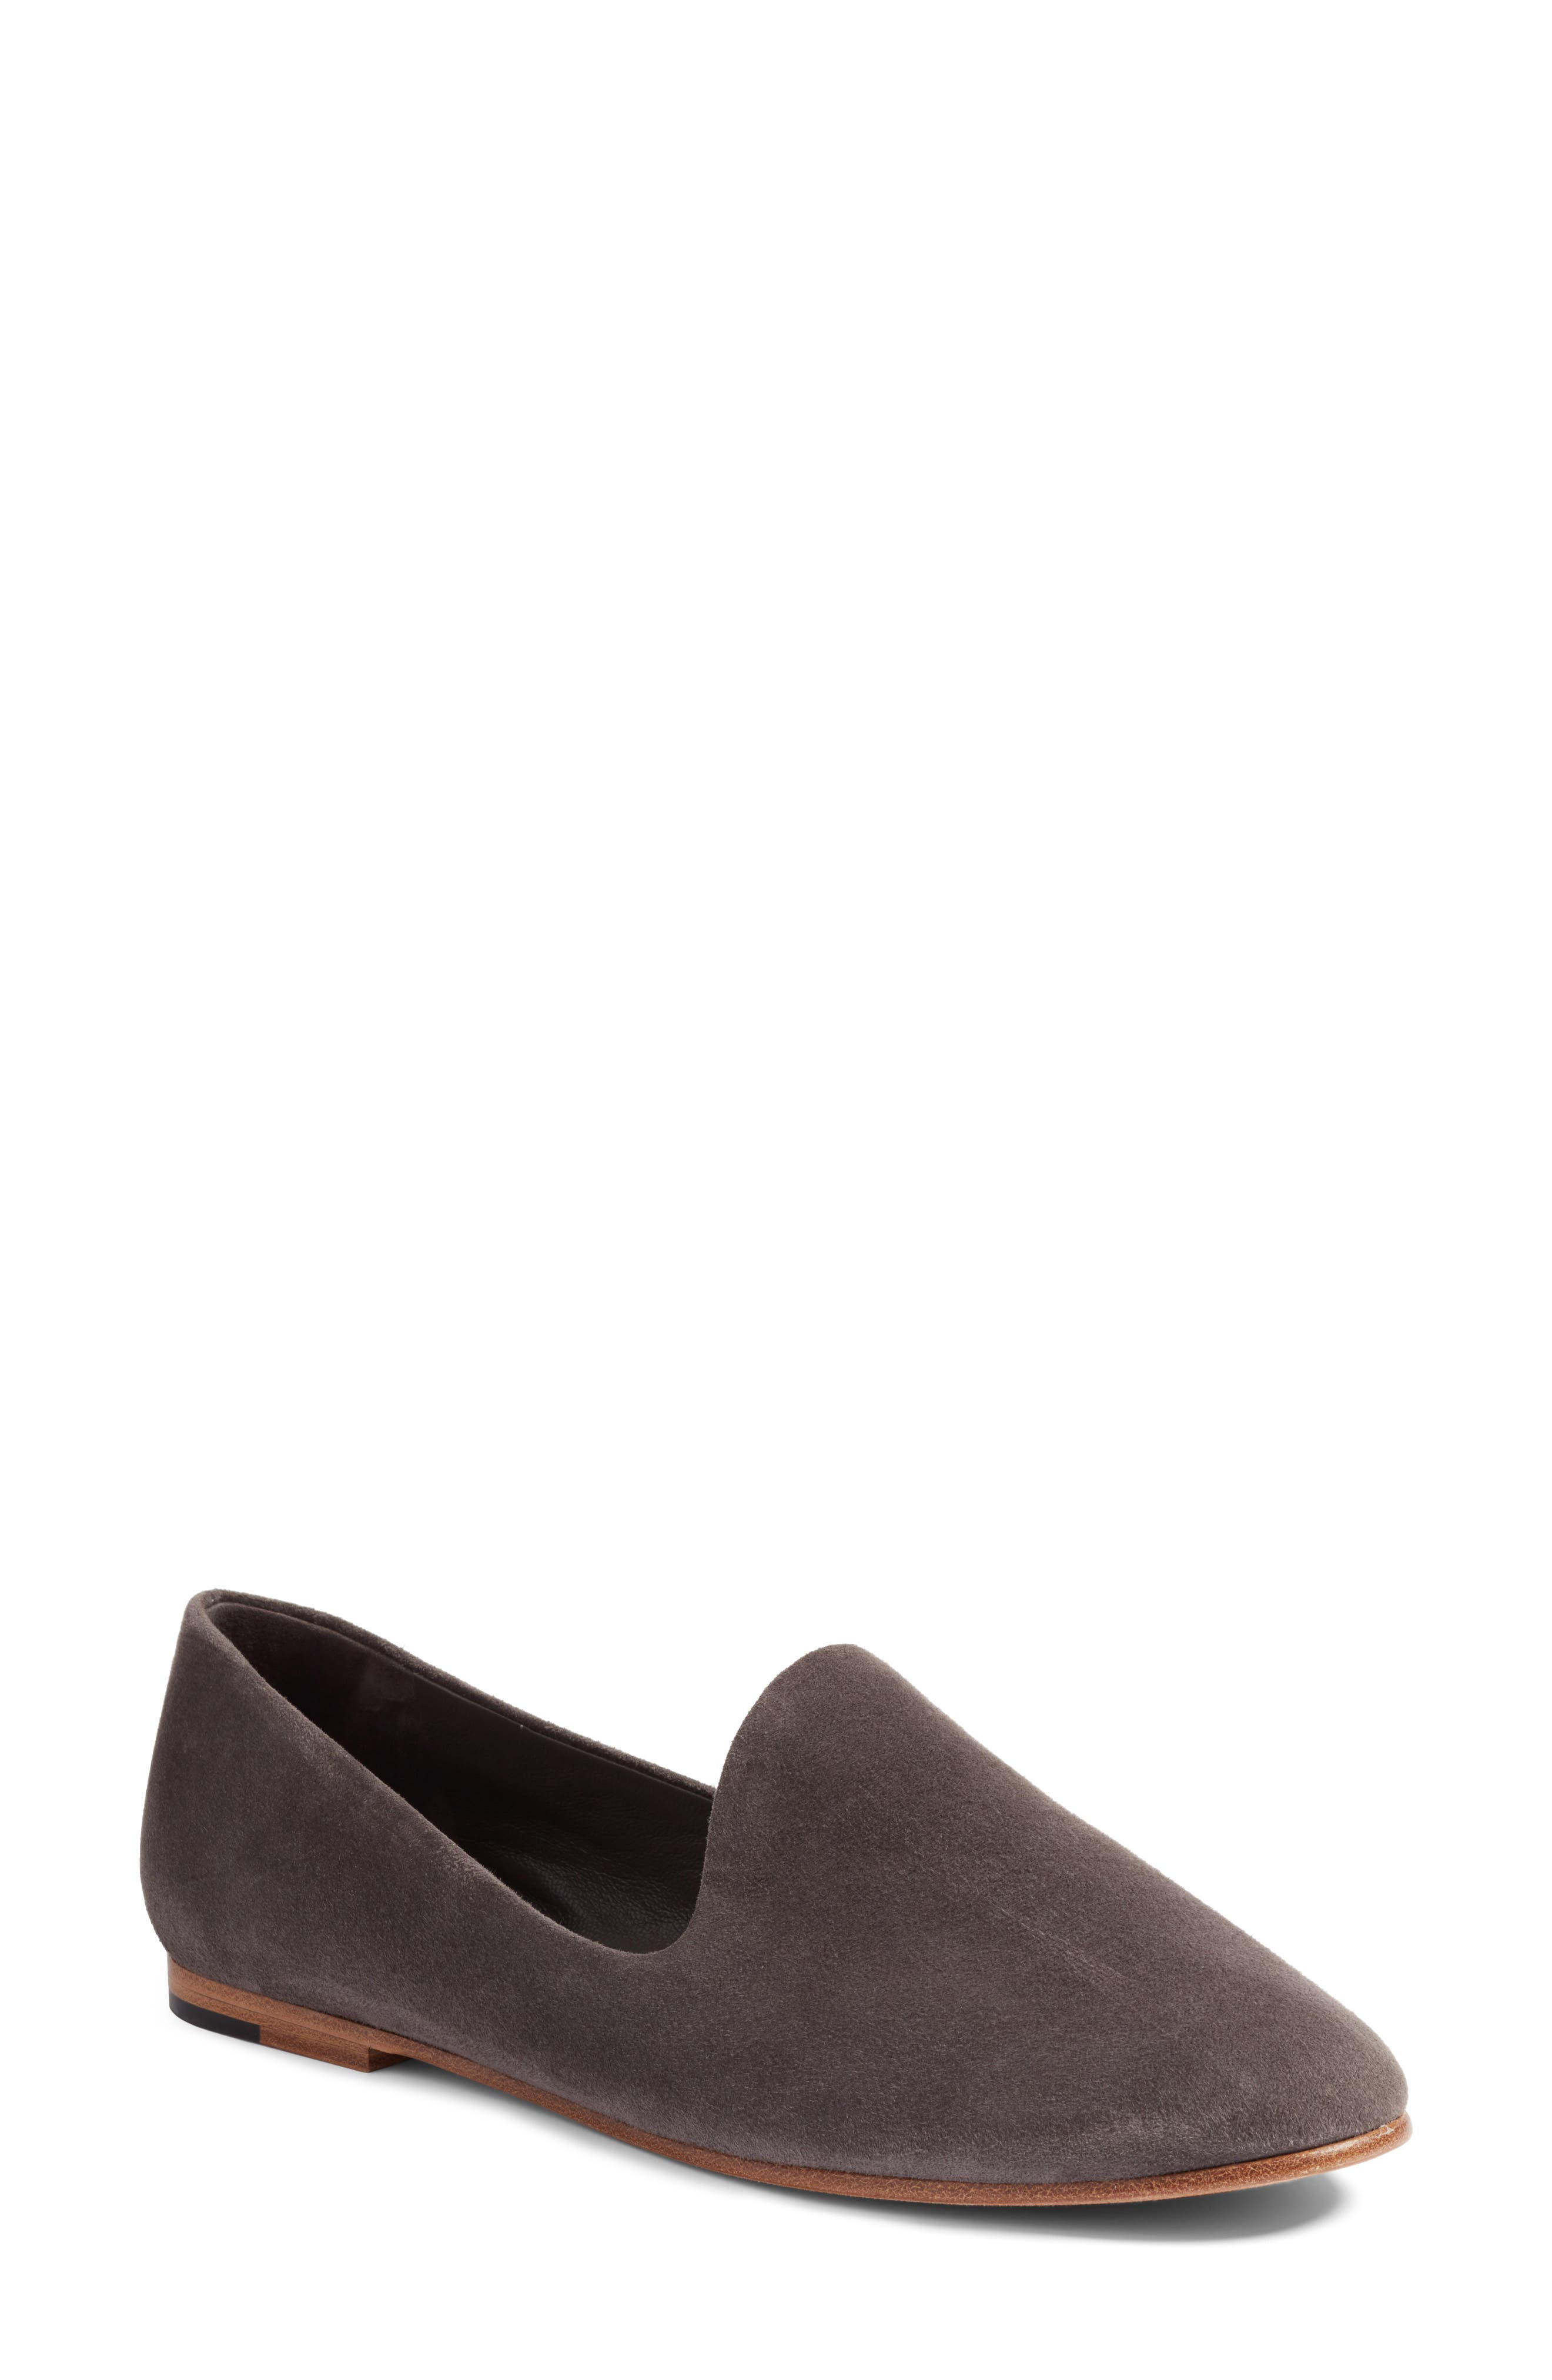 Alternate Image 1 Selected - Vince Milo Loafer (Women)